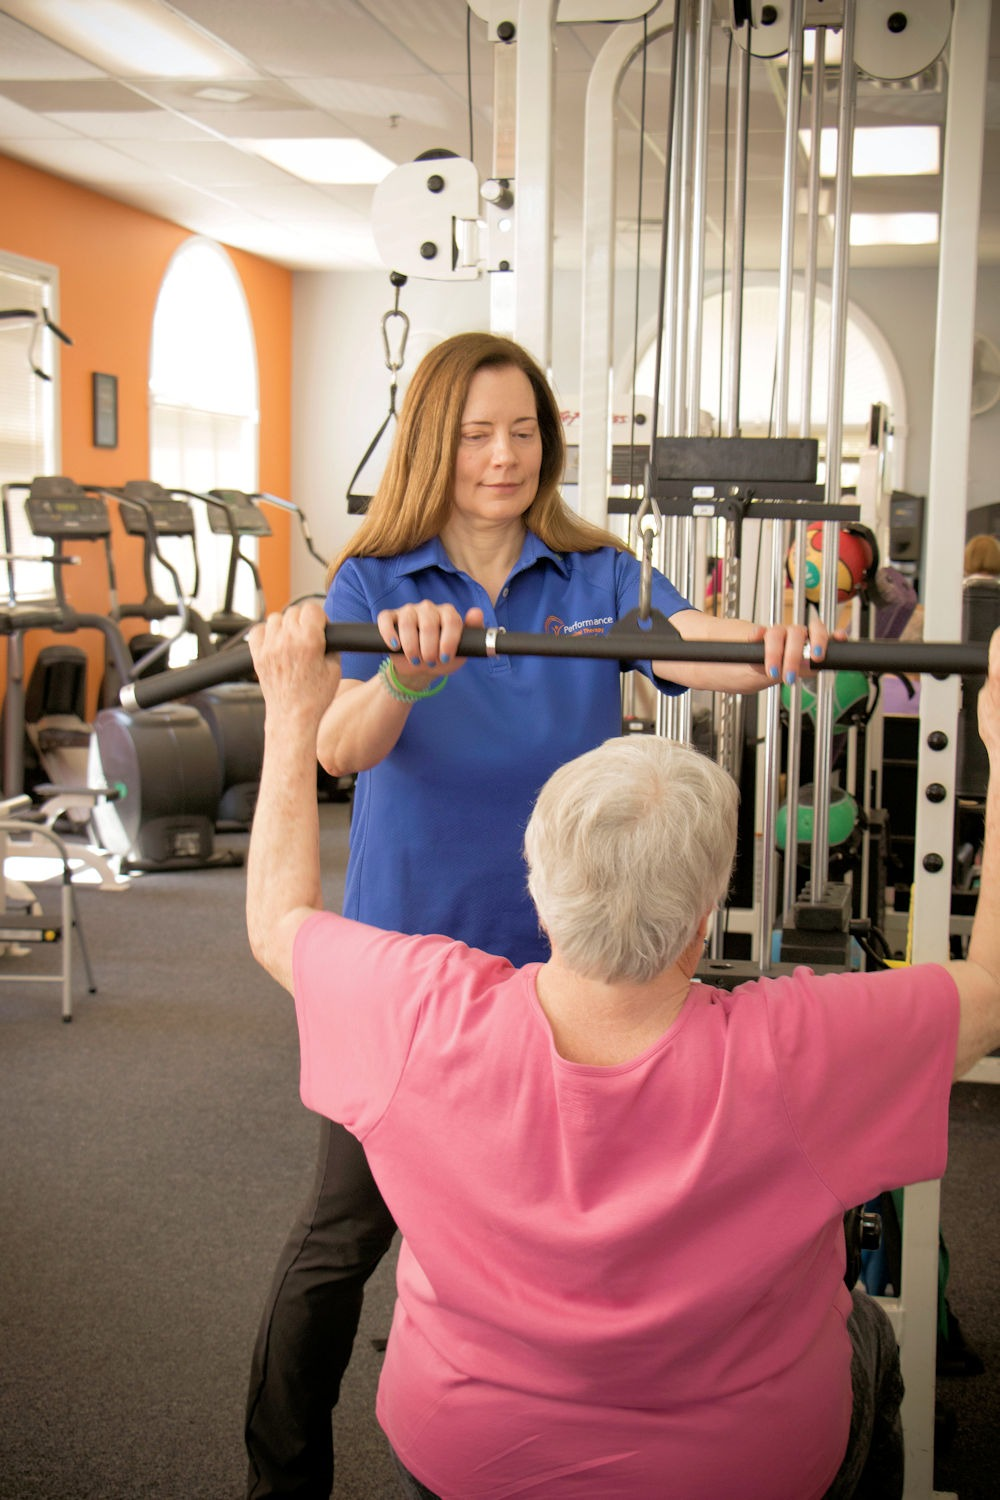 Elderly Personal training in delaware